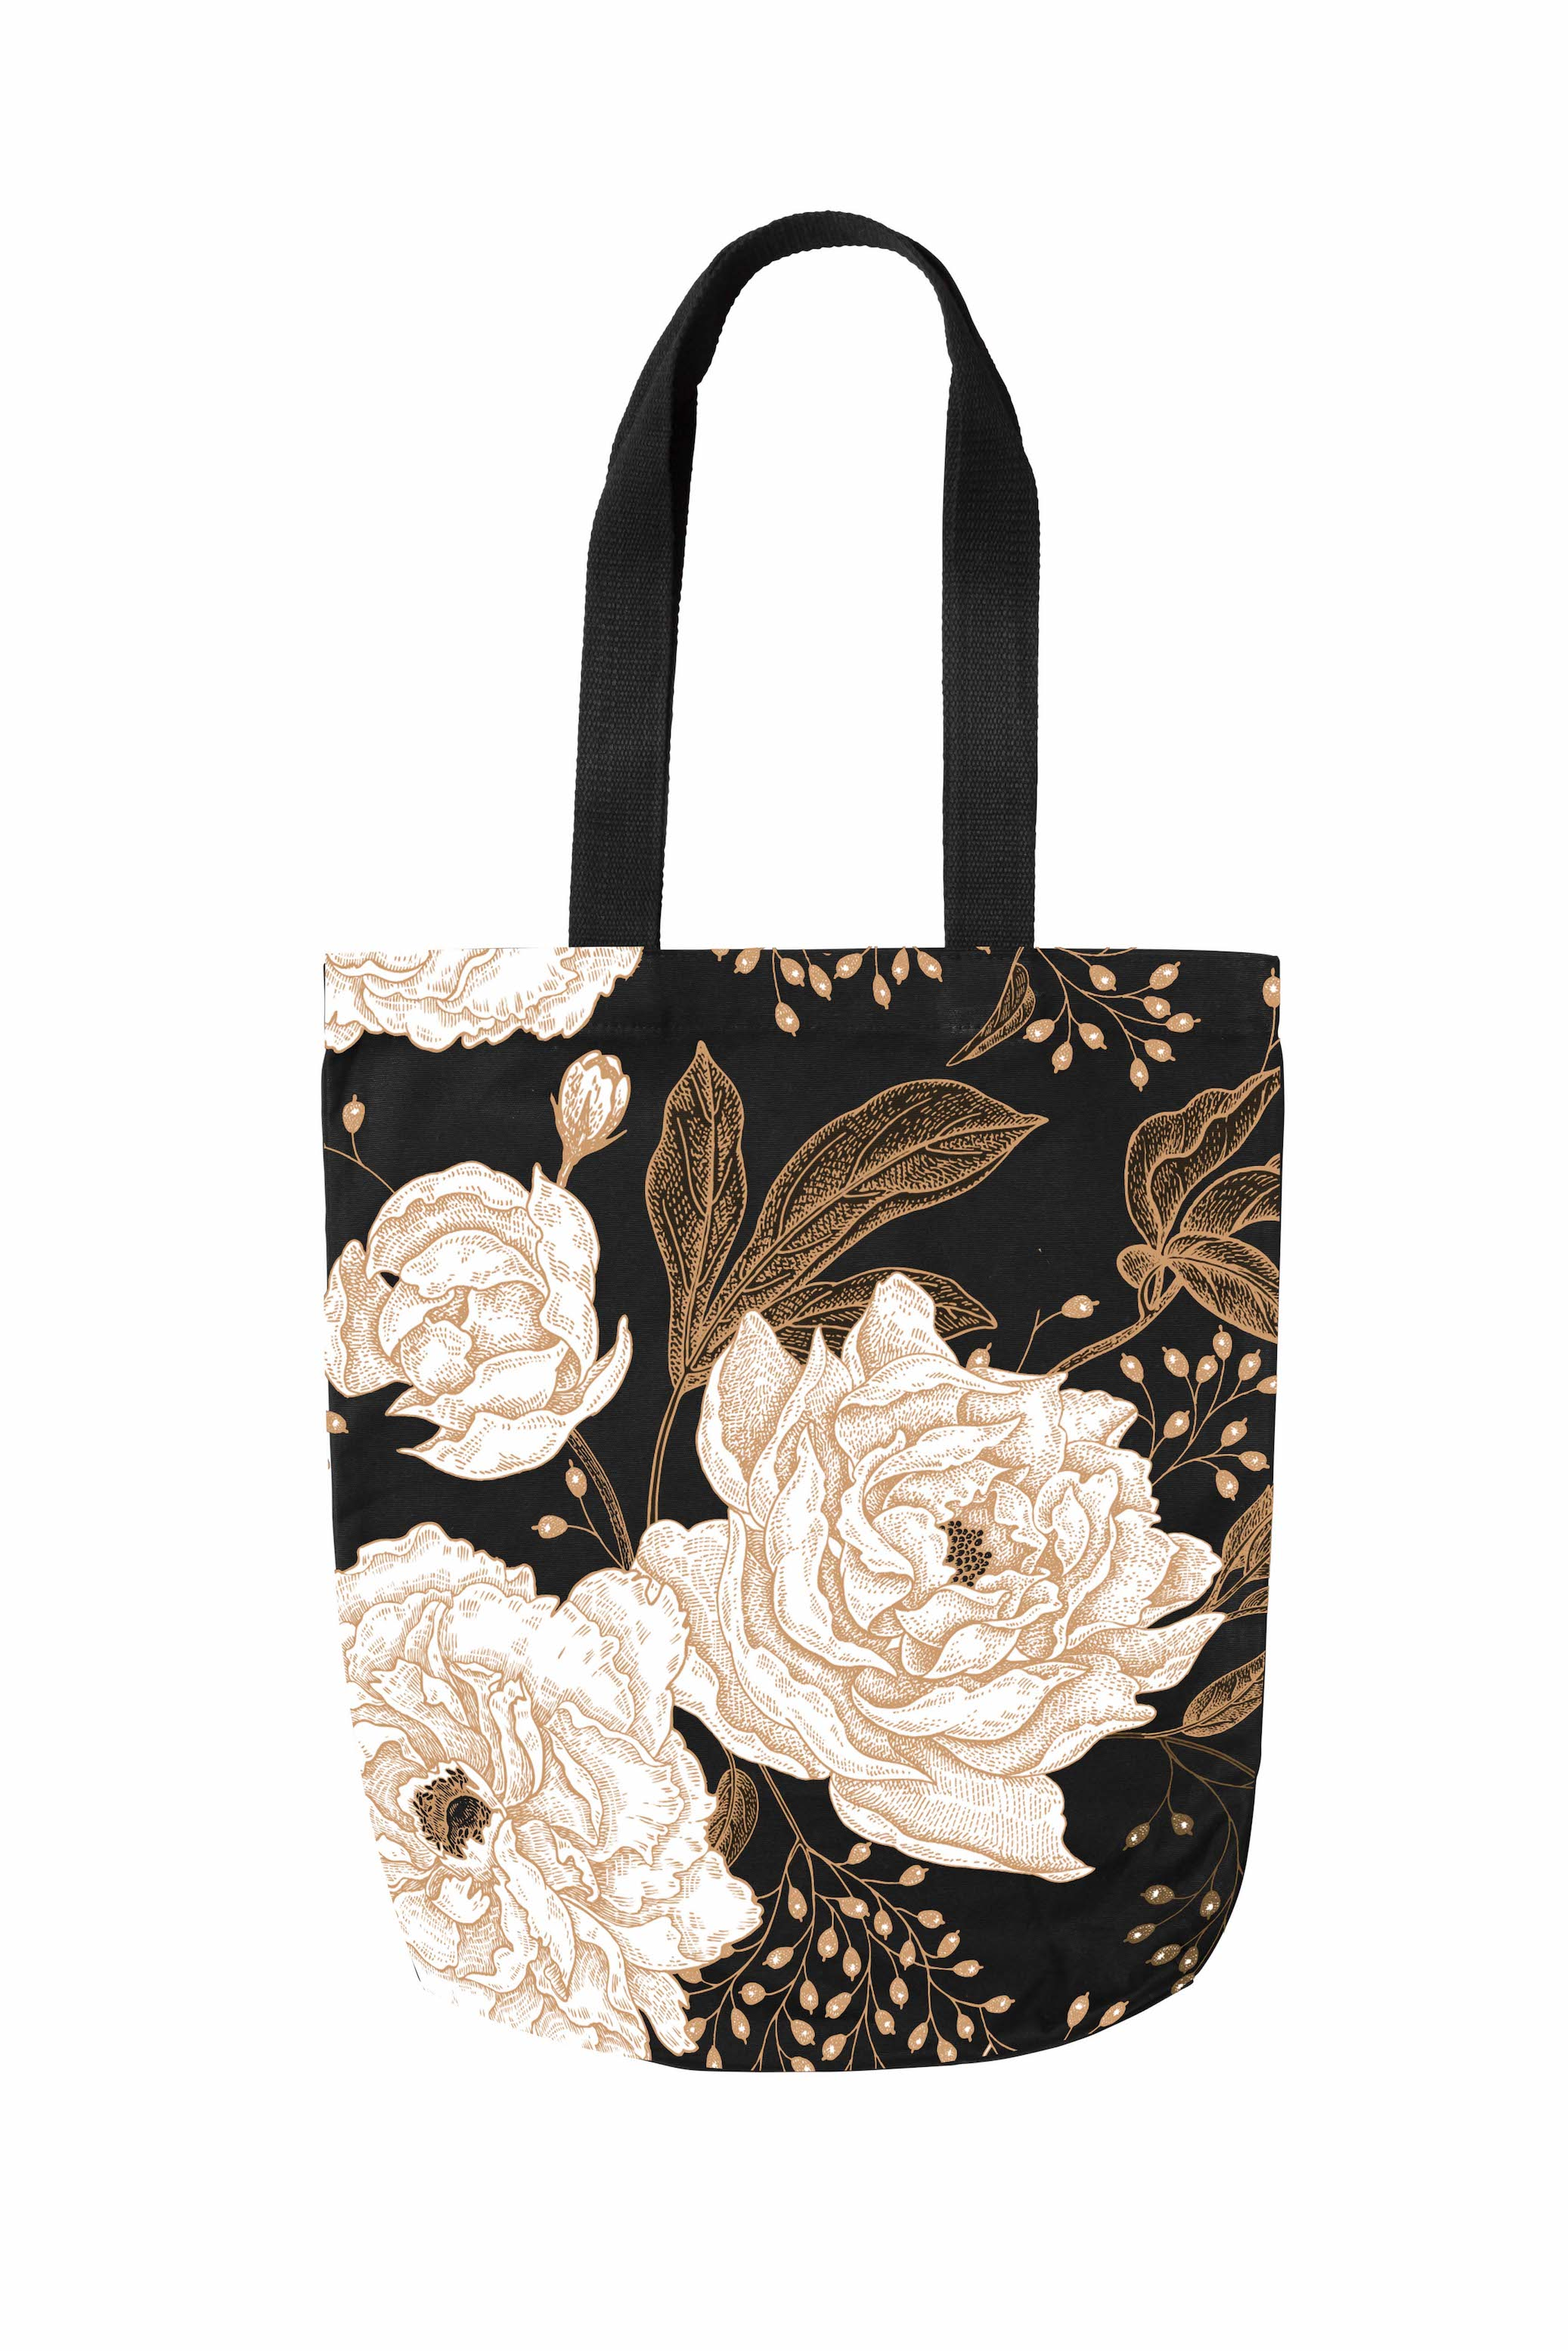 Floral-DTS-007A Eco Fashion Tote Black.jpg